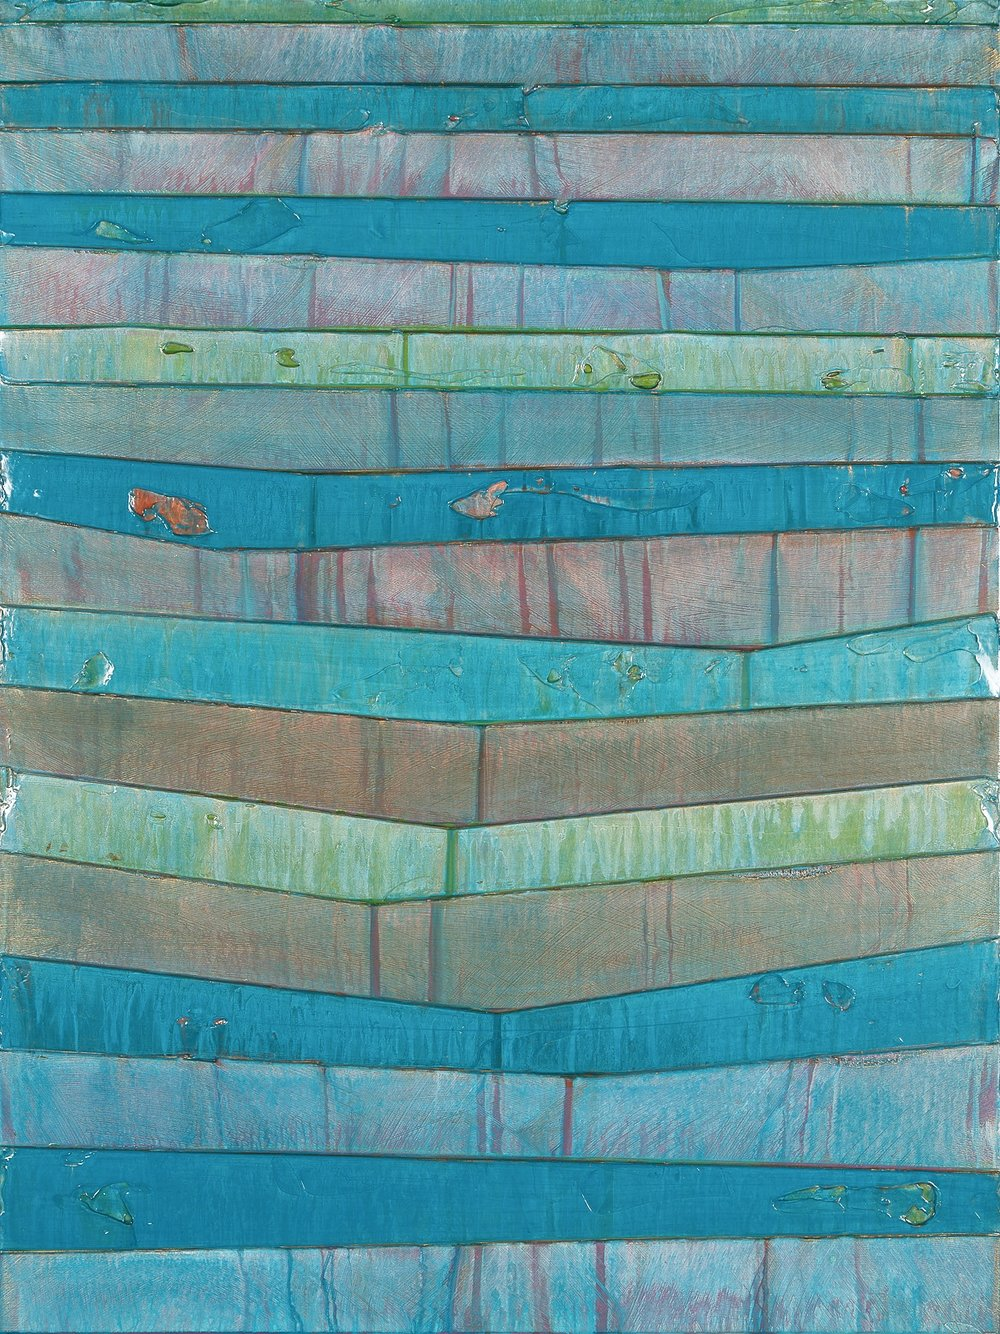 Aquamarine 1 (left panel)